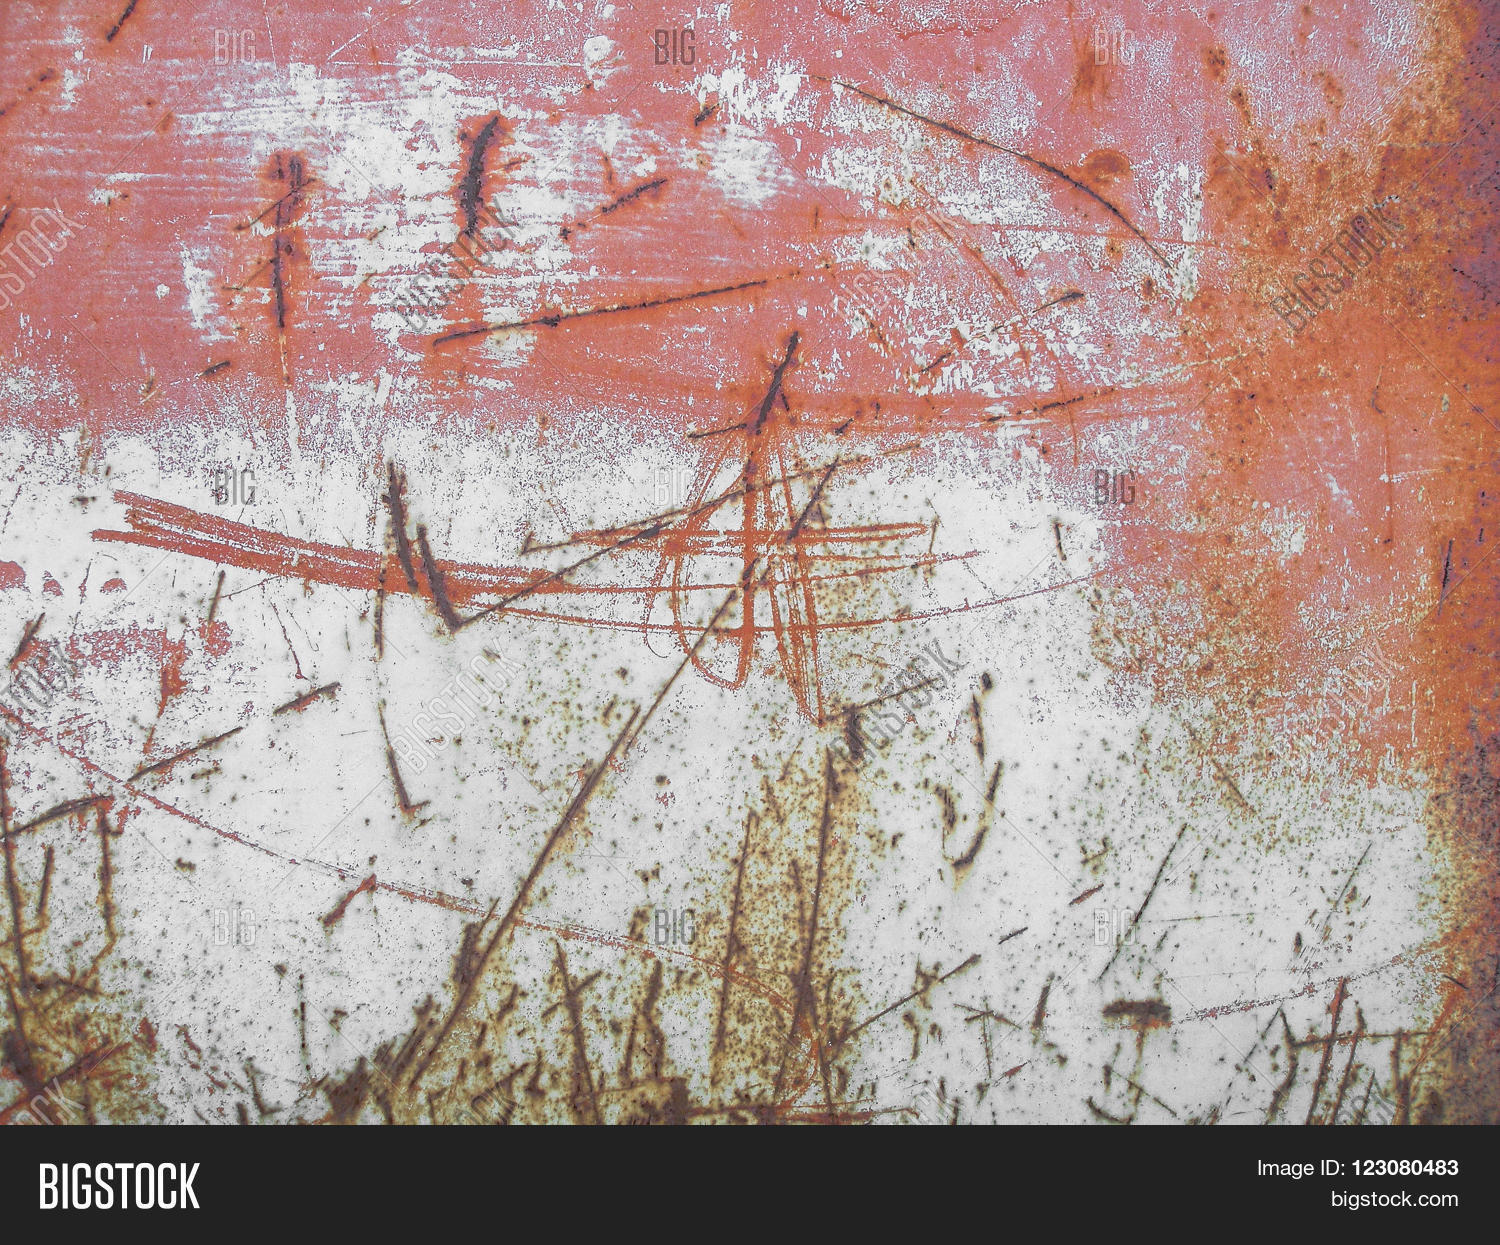 grunge rusty background texture - photo #44